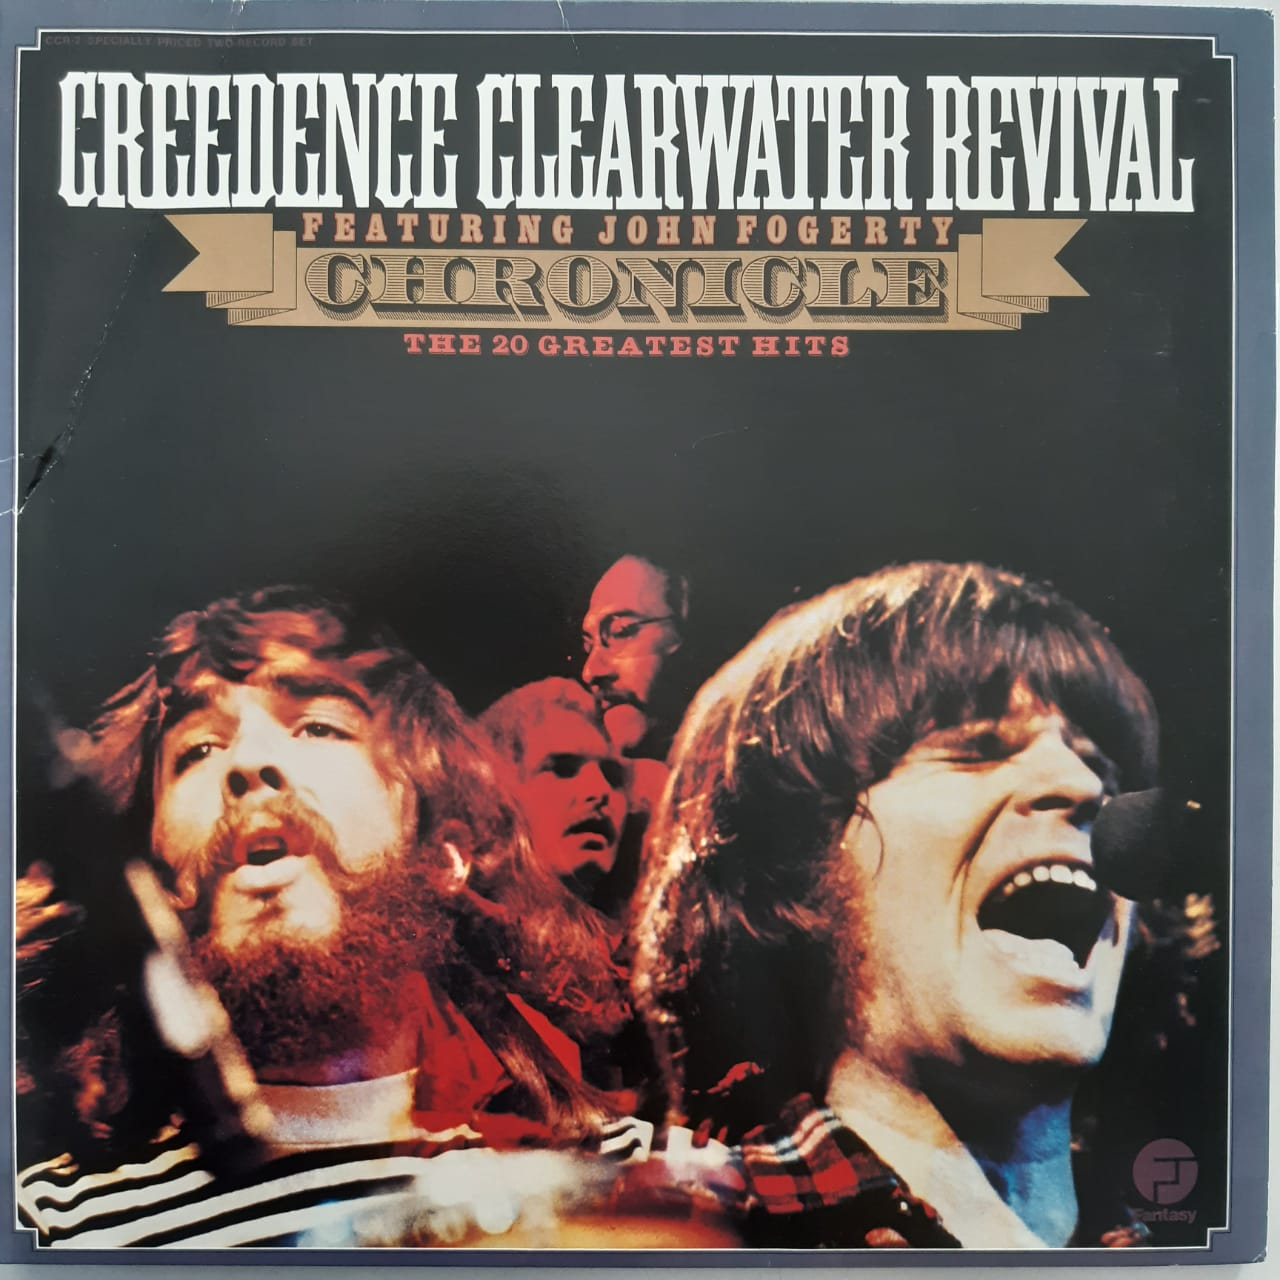 Lp Vinil Creedence Clearwater Revival Chronicle